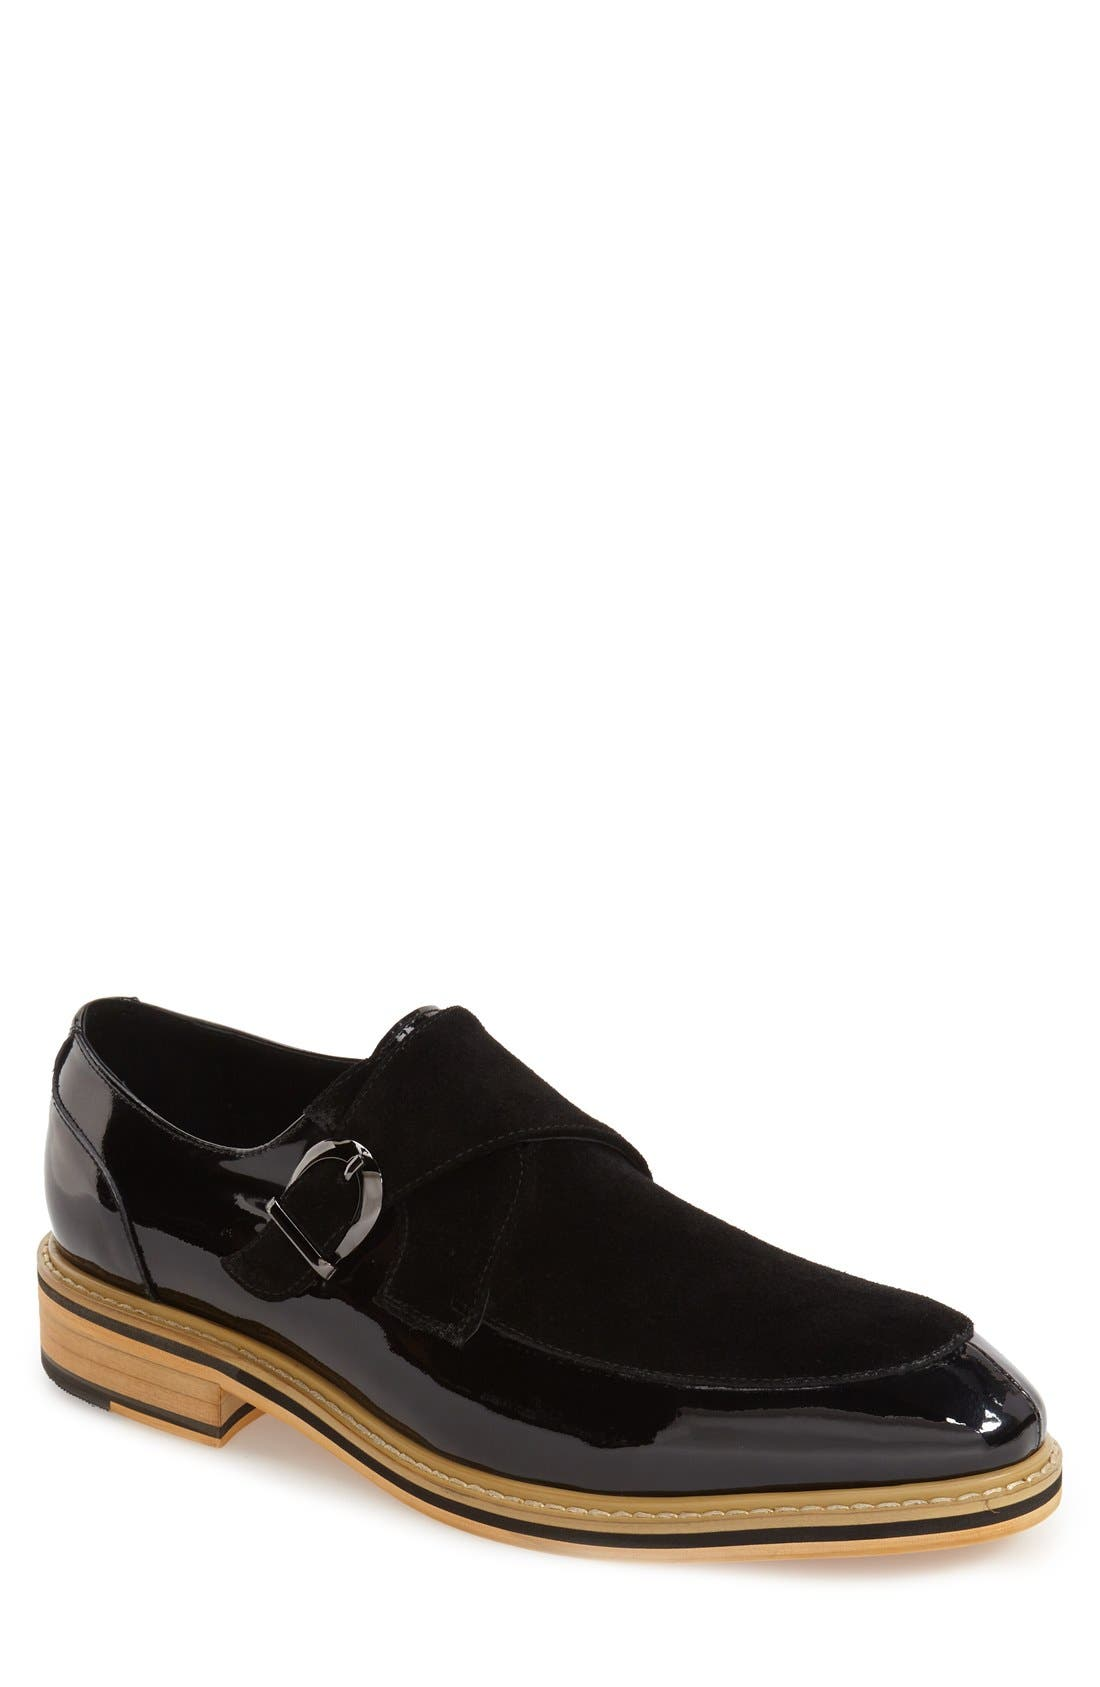 'Courbet' Monk Strap Shoe,                             Main thumbnail 1, color,                             Black